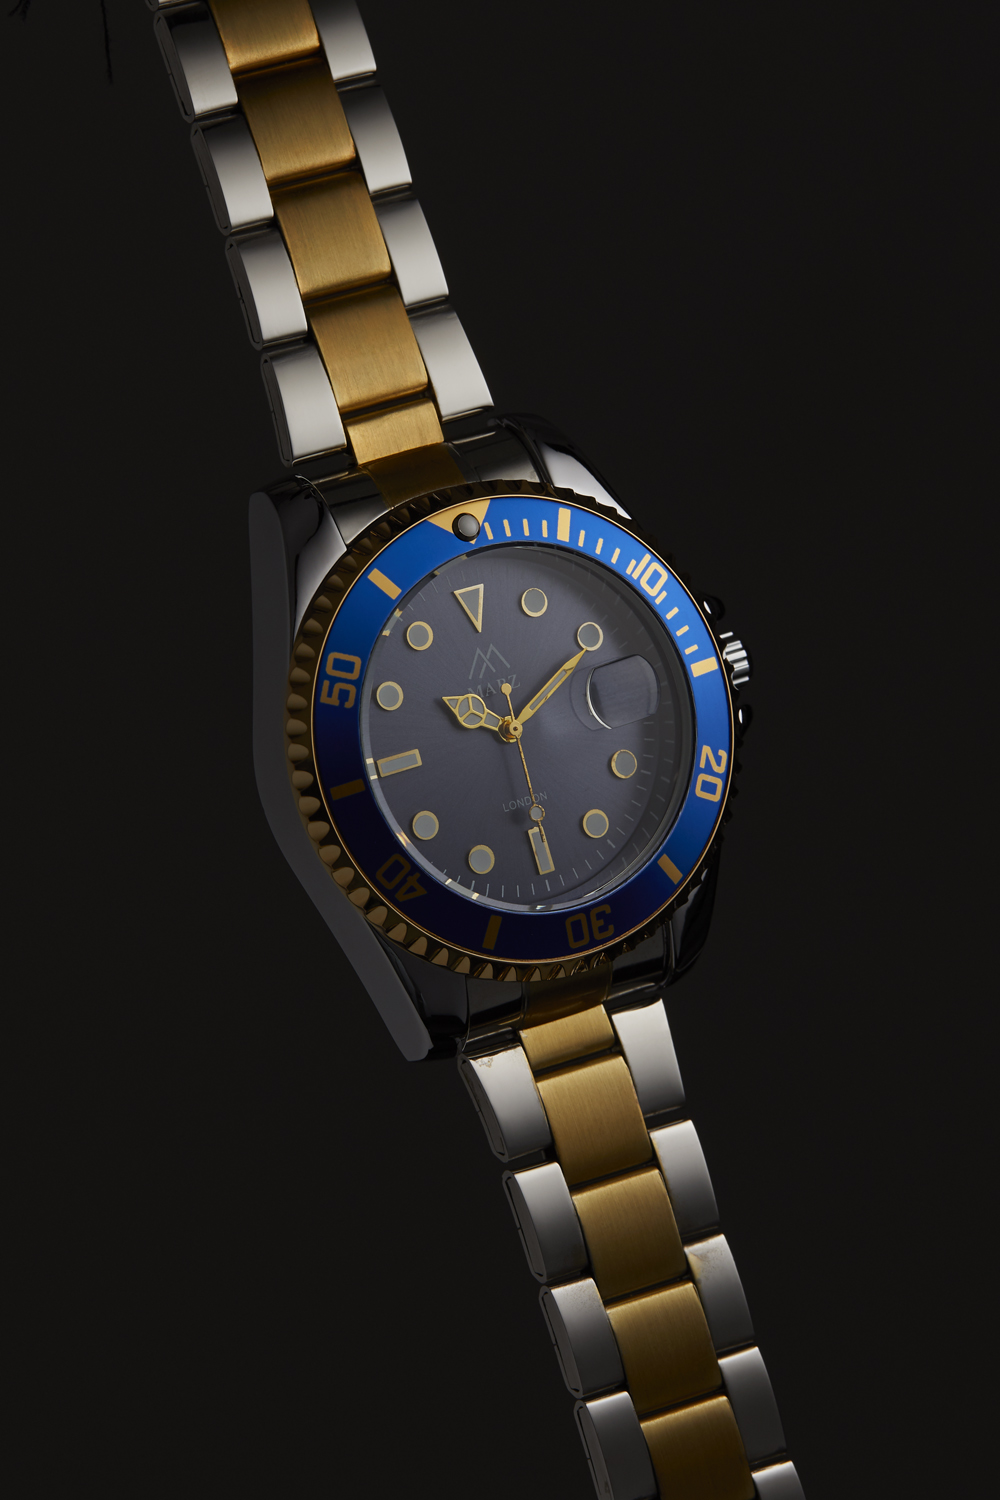 Image of a classic watch with highlight